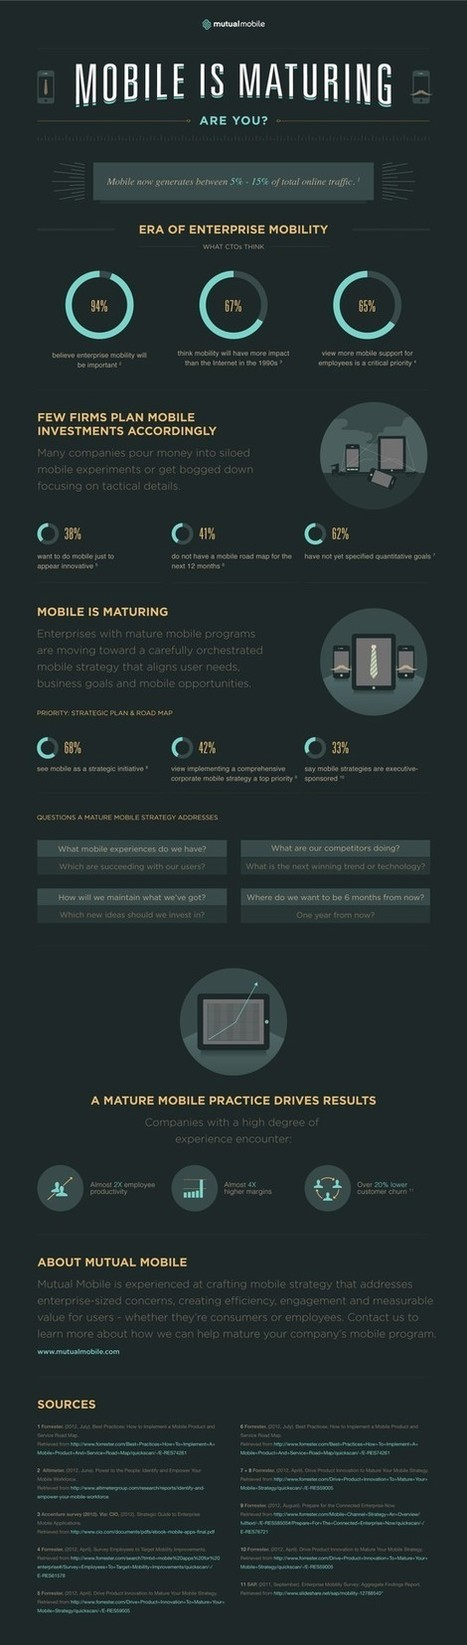 Mobile is maturing. Are you? | Smart Phone & Tablets | Scoop.it